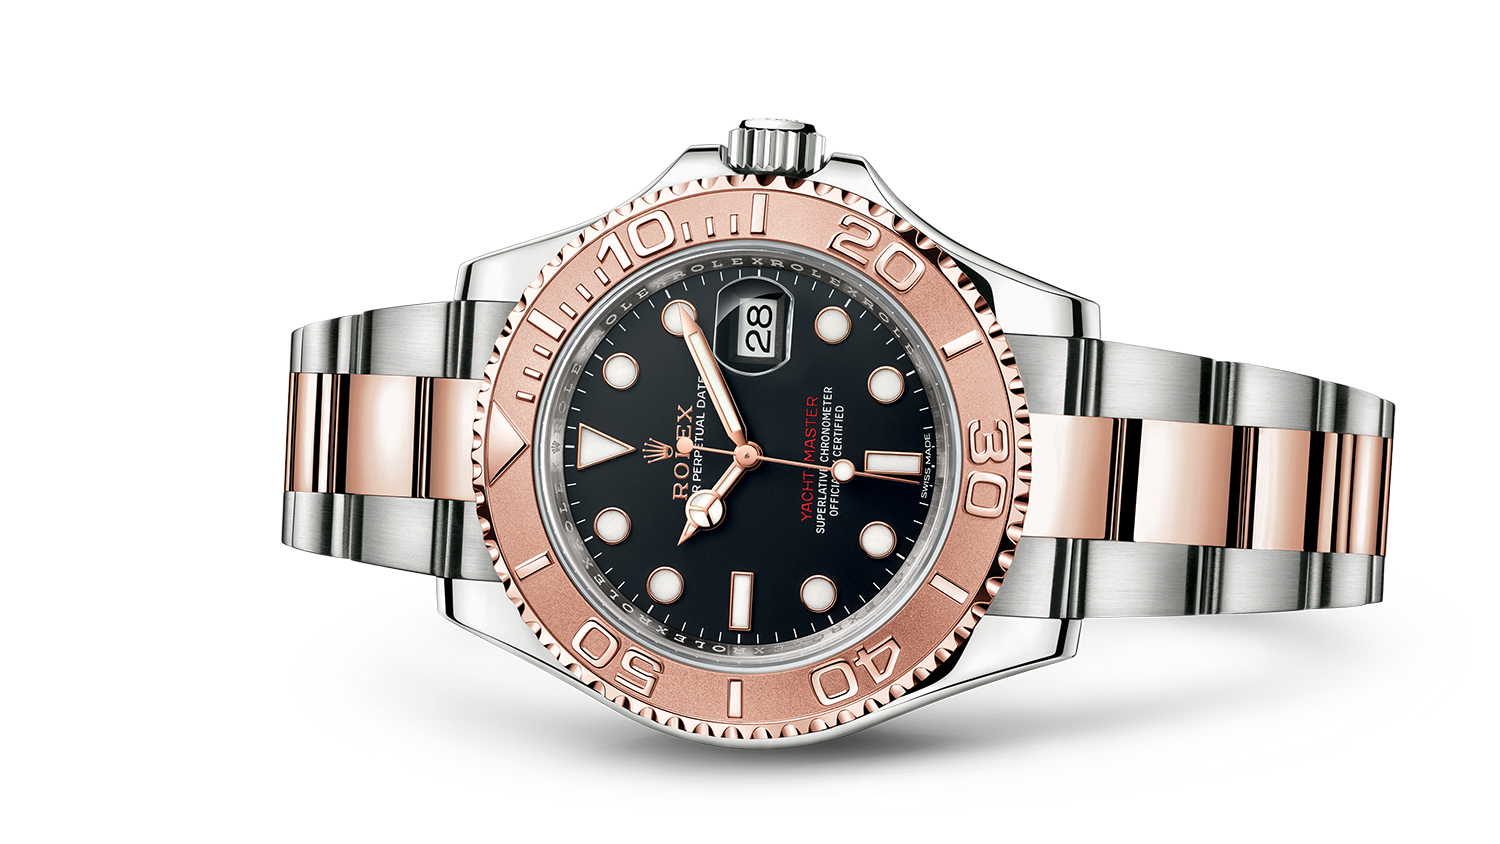 YACHT-MASTER 40 Oyster, 40 mm, steel and Everose gold